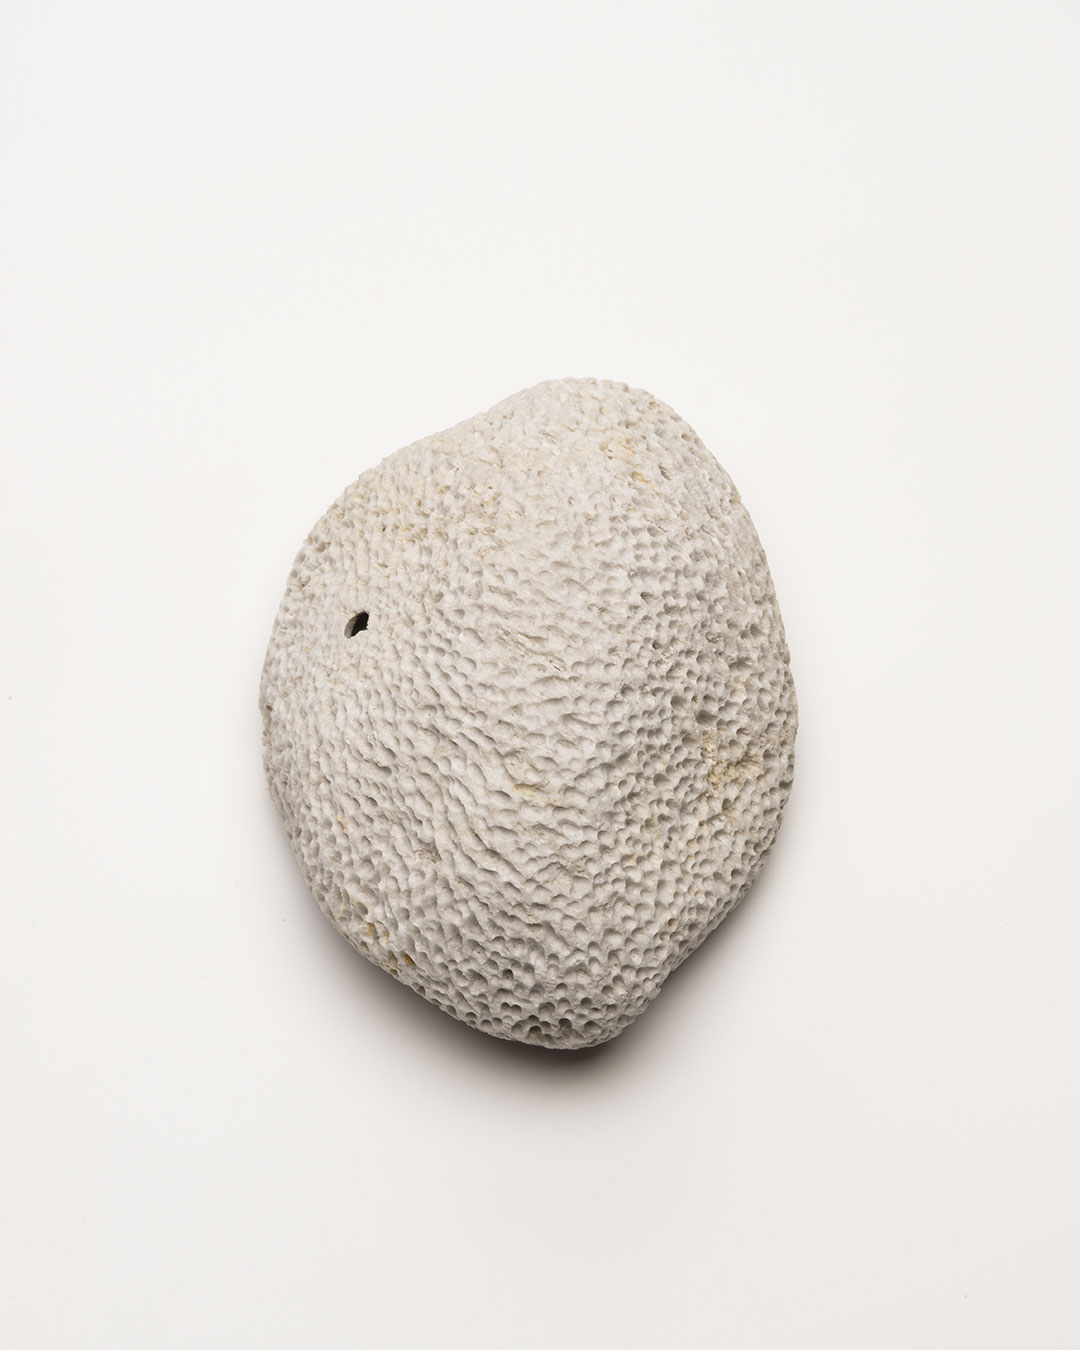 Vivi Touloumidi, What Will the Cosmos Say? 2013, brooch, pumice stone, steel, 100 x 70 x 50 mm, €280 (image: front)